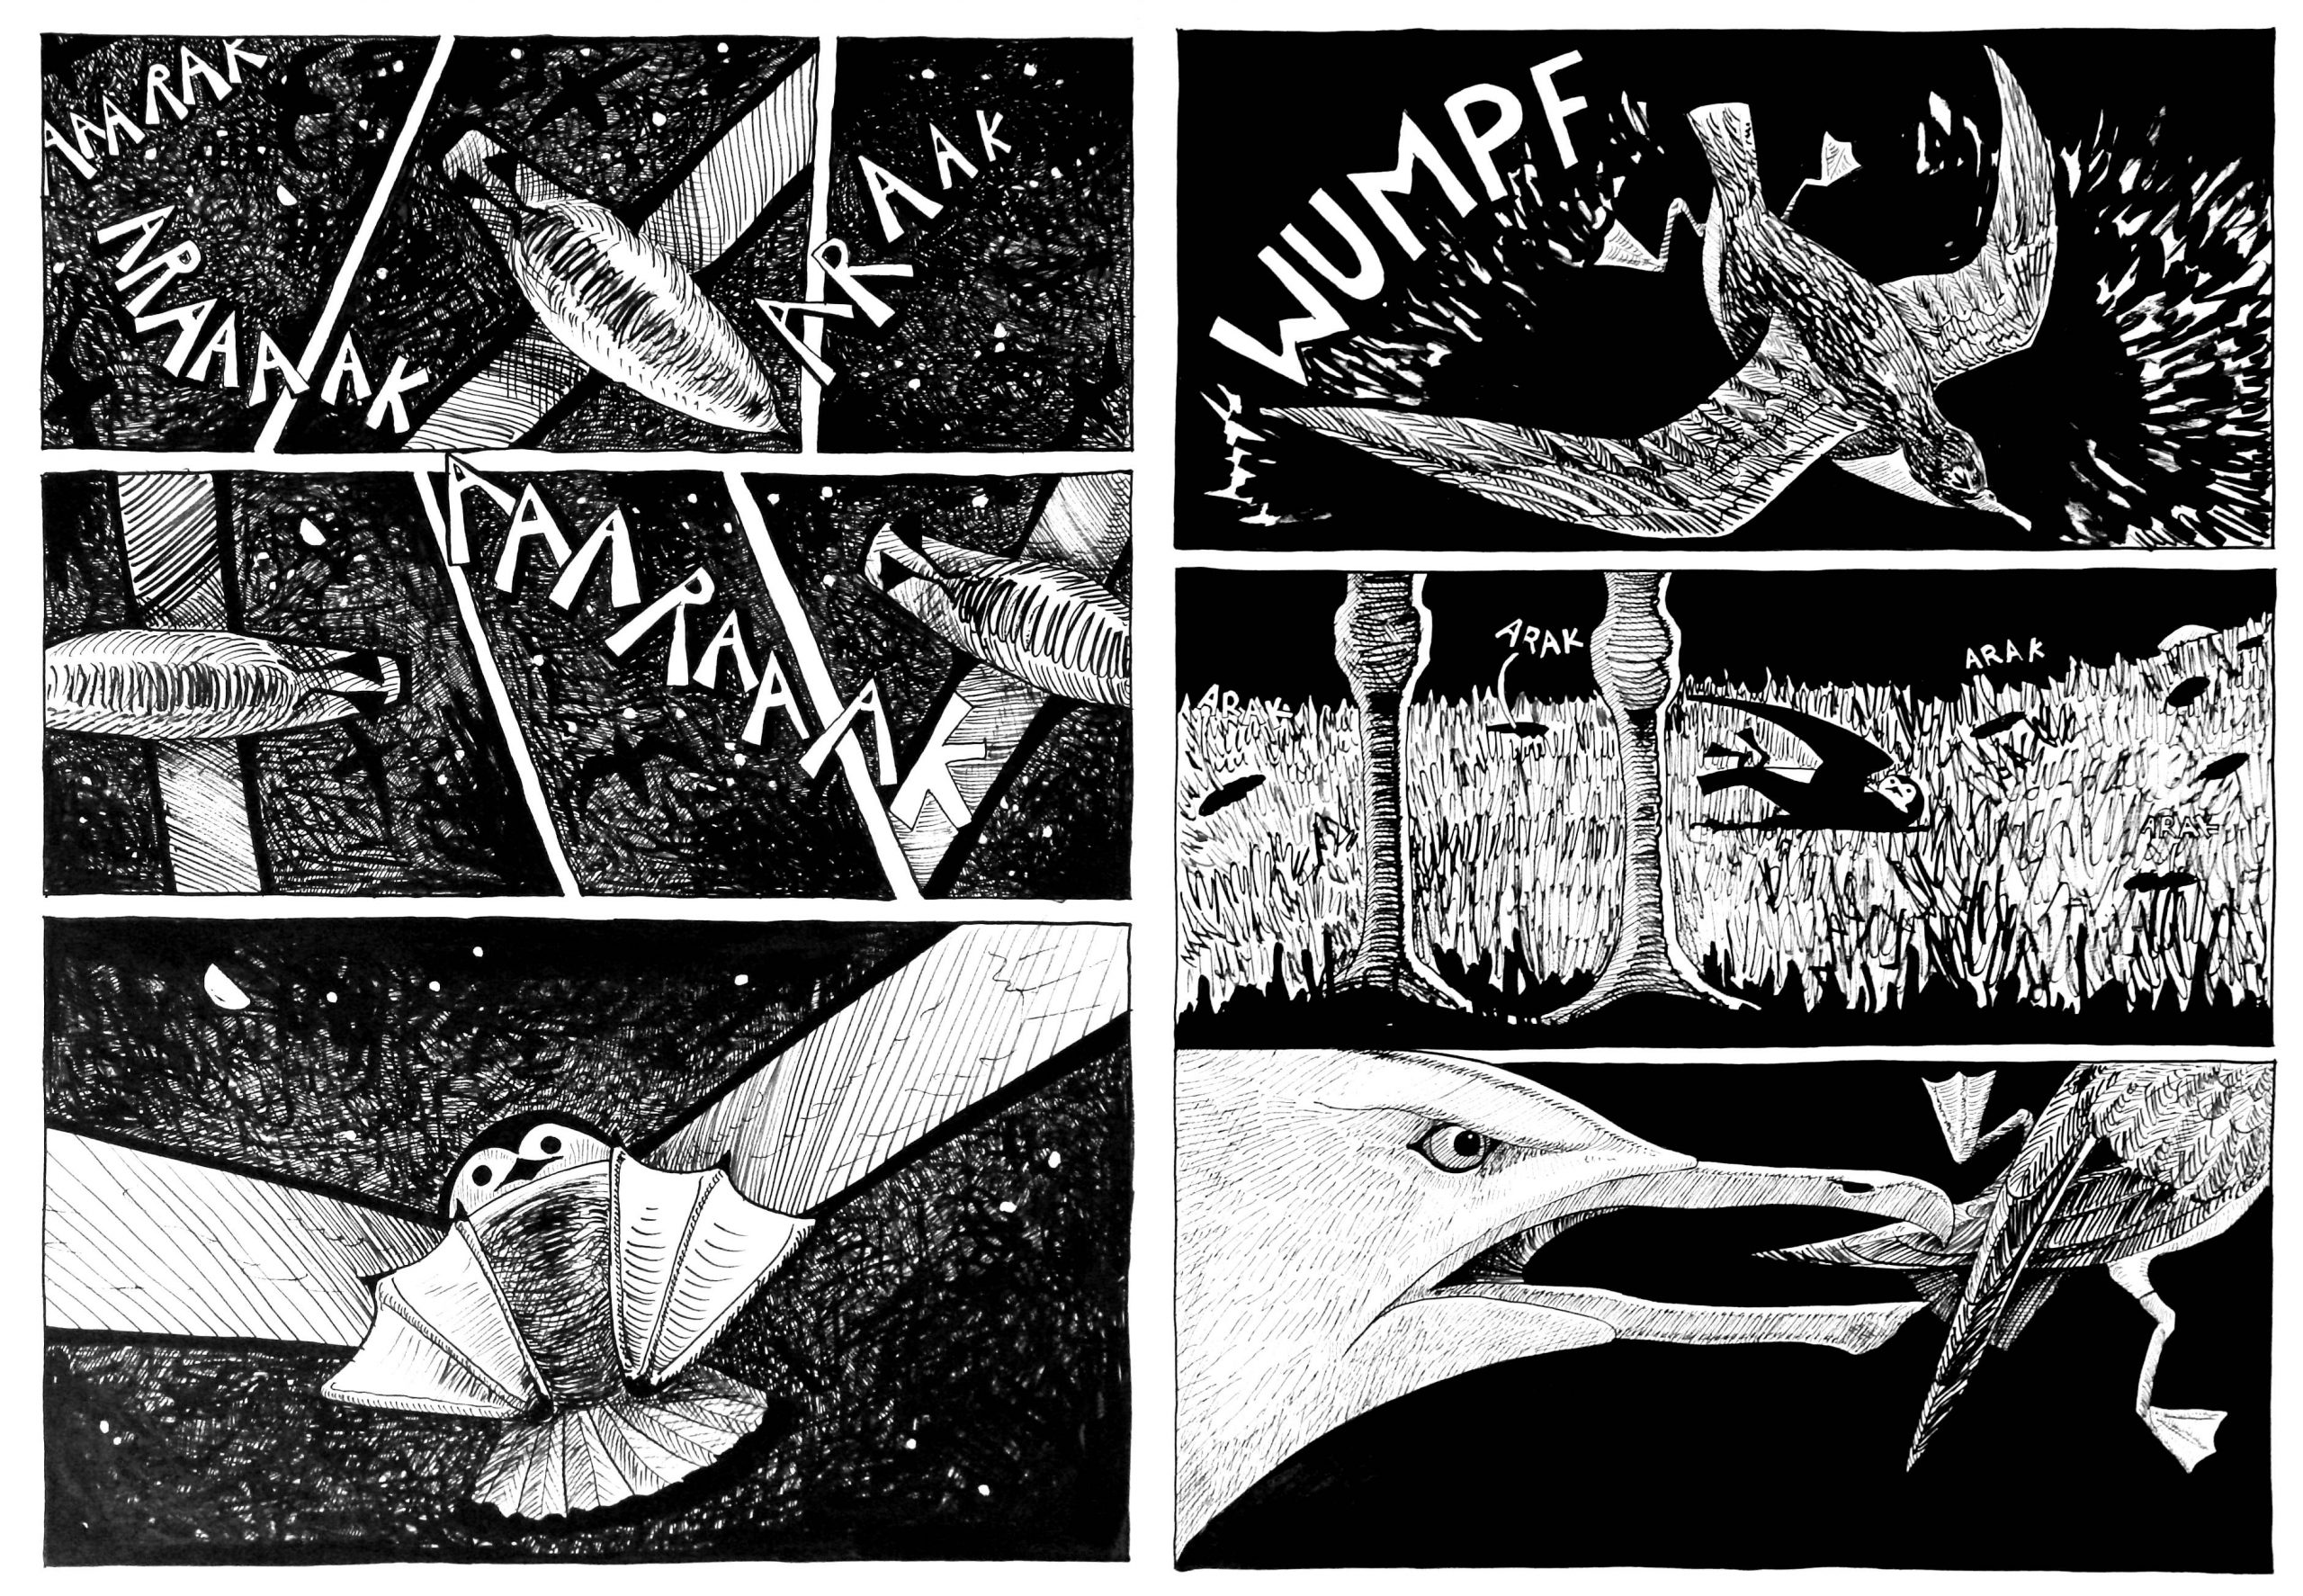 2 pages from a black and white cartoon, a confusion of shearwaters in the sky at night, then one lands to find it is near a gull and has to make its escape